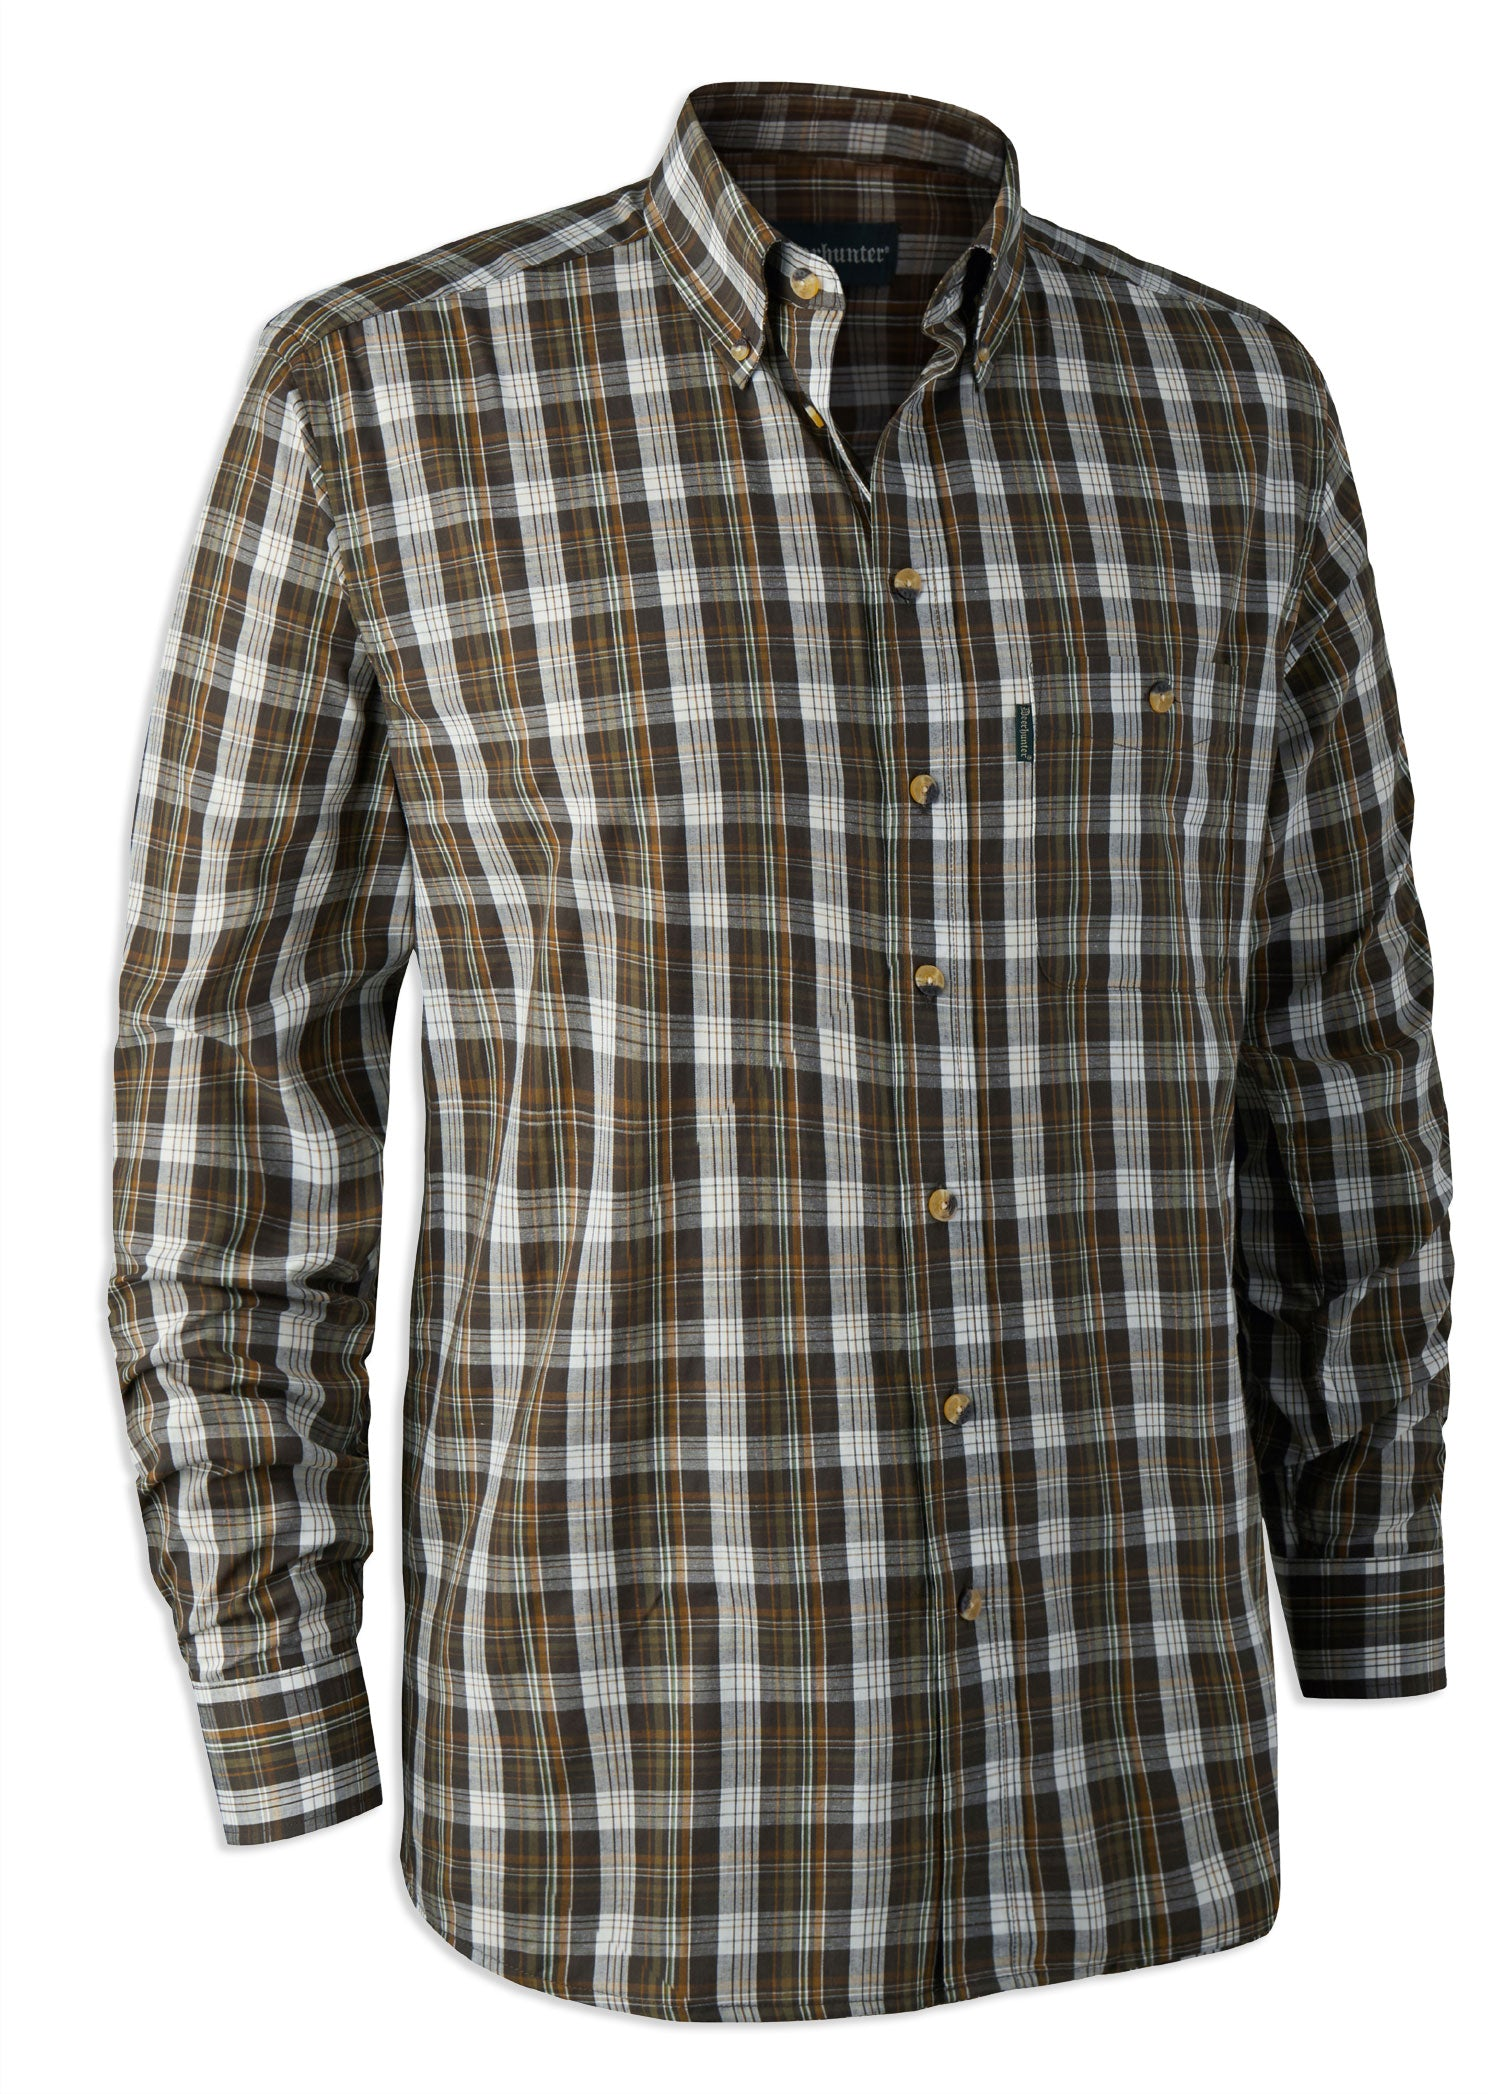 Deerhunter Craig Long Sleeve Shirt